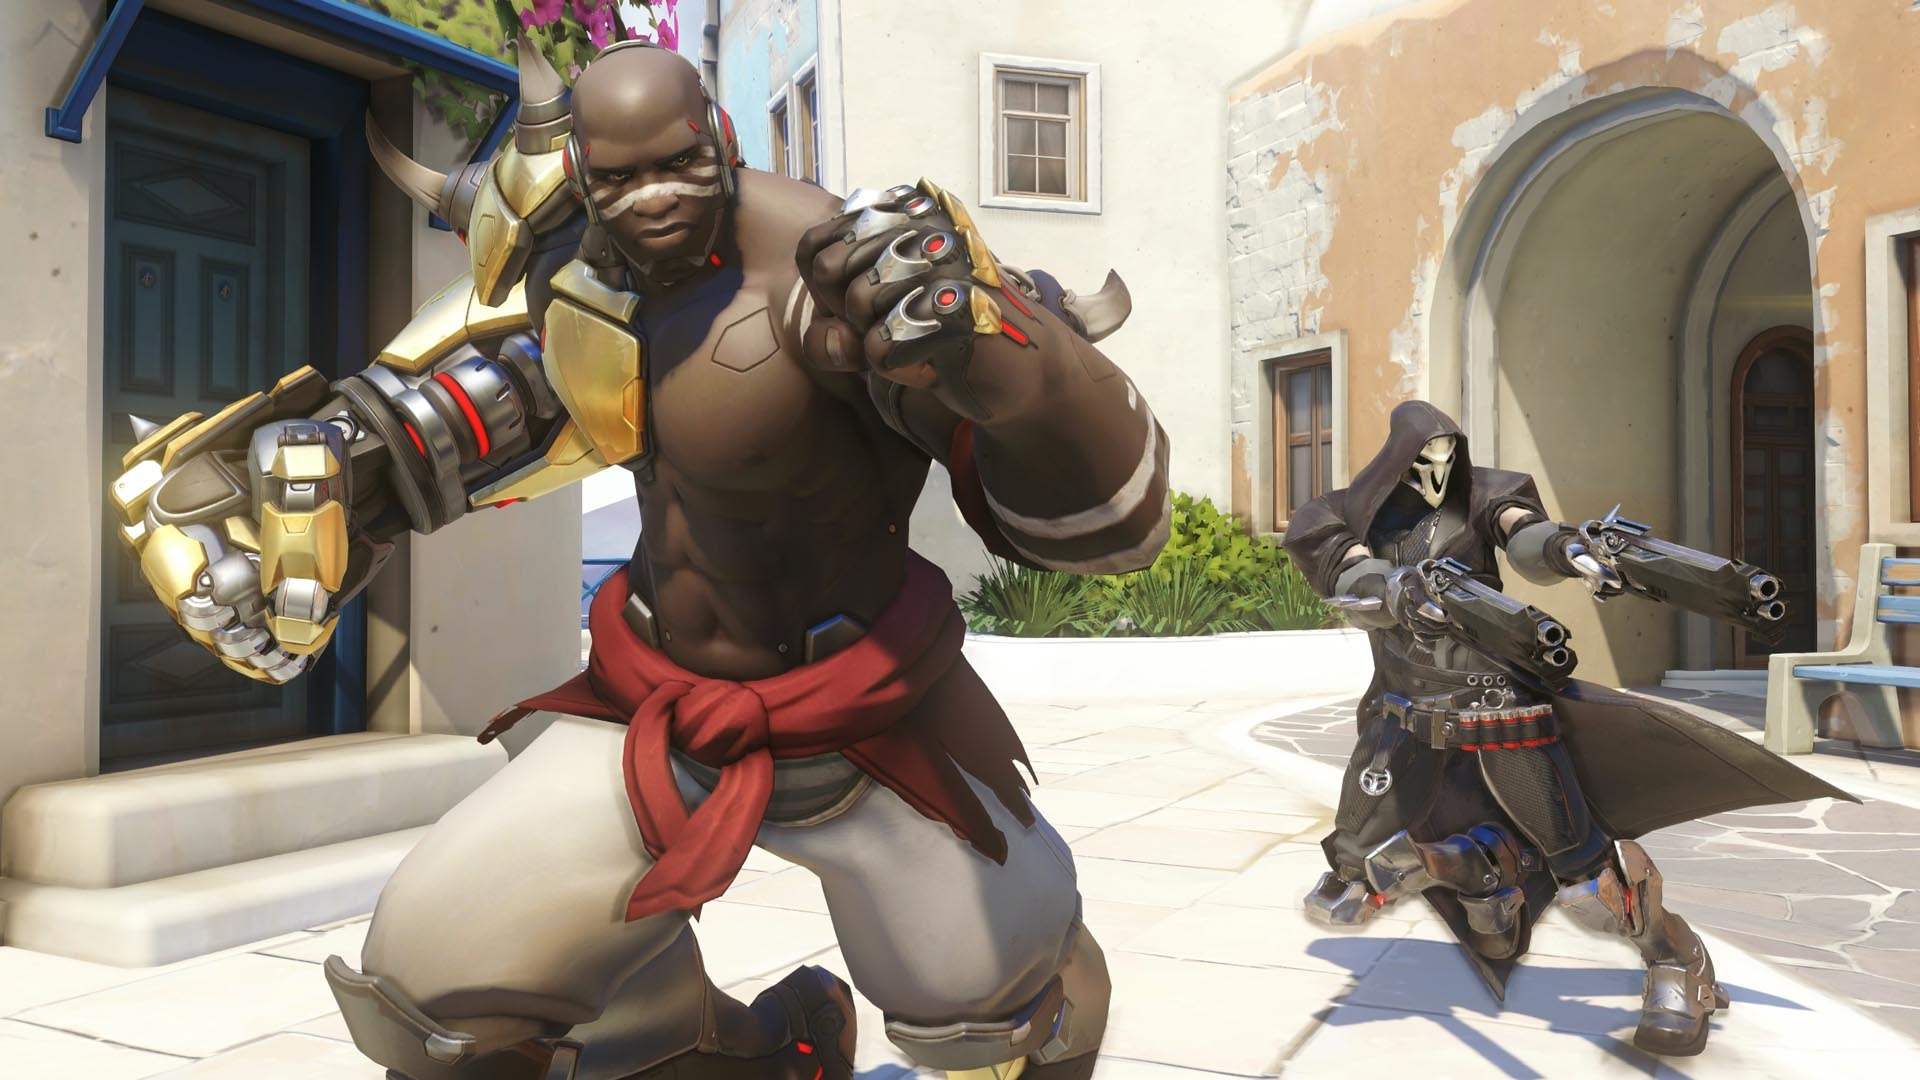 No, Terry Crews is not the voice actor for Doomfist, it's Sahr Ngaujah.